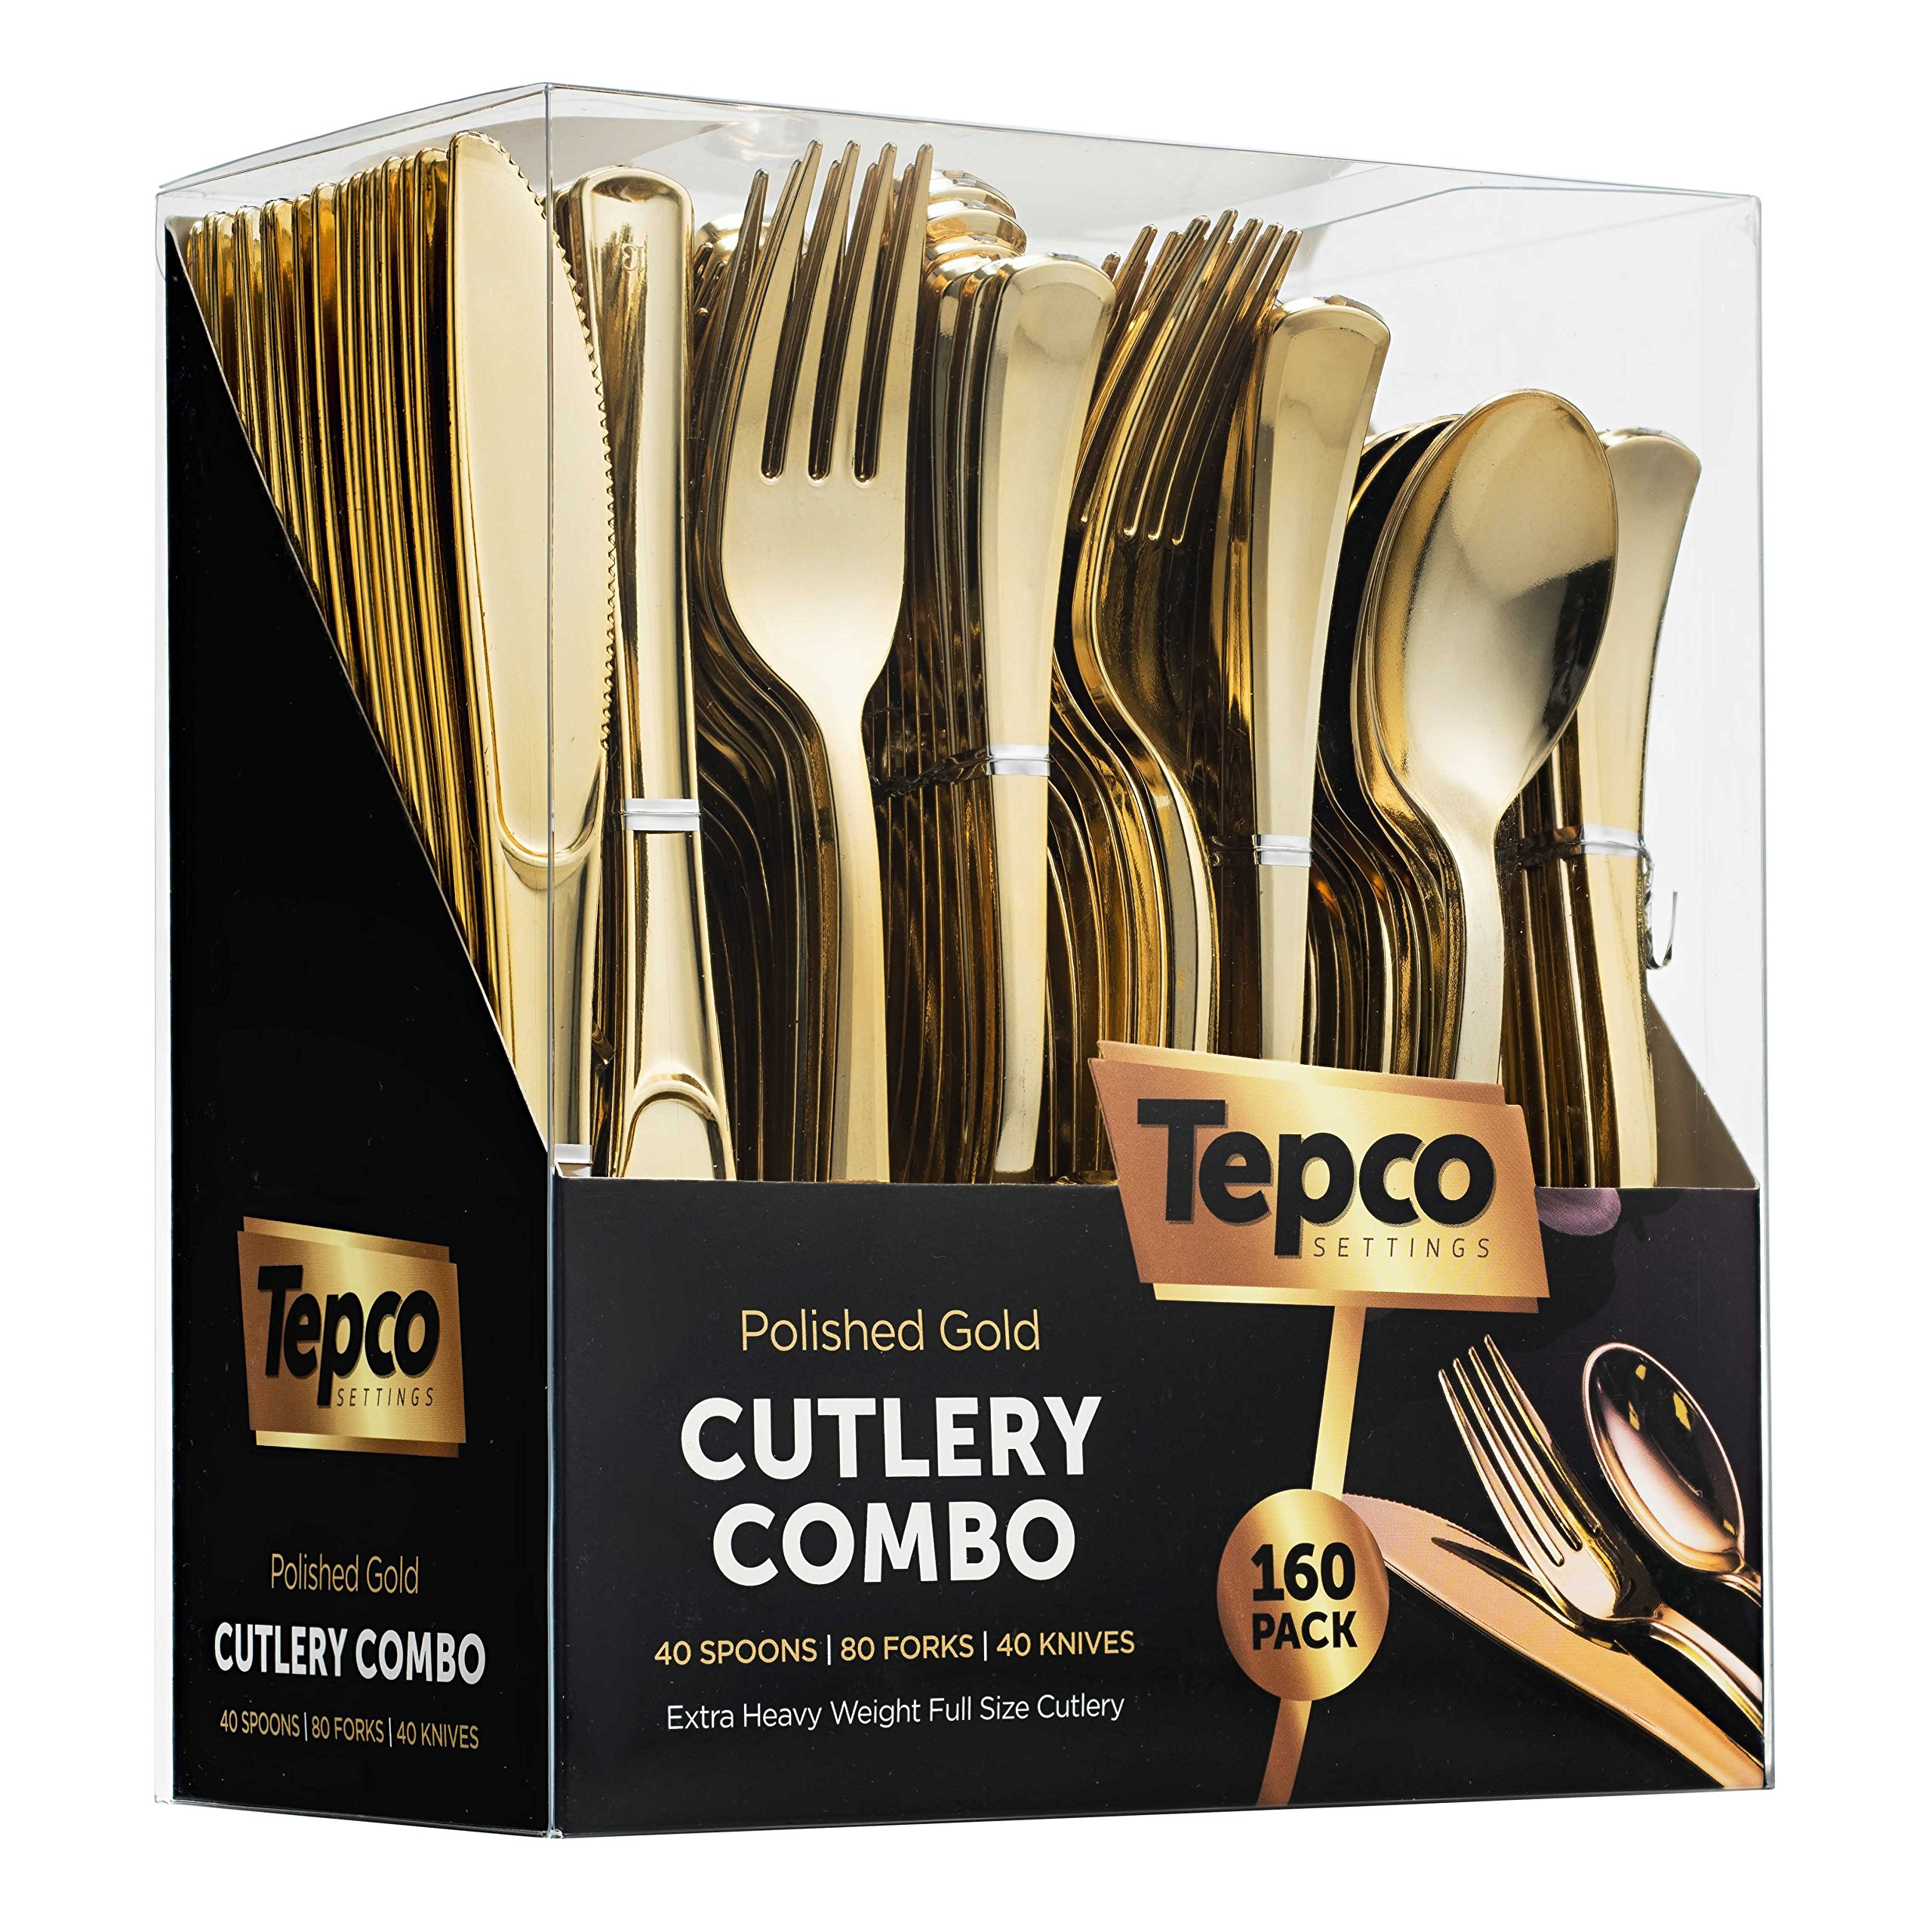 160 Plastic Silverware Set - Plastic Cutlery Set - Disposable Flatware - 80 Plastic Forks, 40 Plastic Spoons, 40 Cutlery Knives Heavy Duty Silverware for Party Bulk Pack (Gold) by Tepco